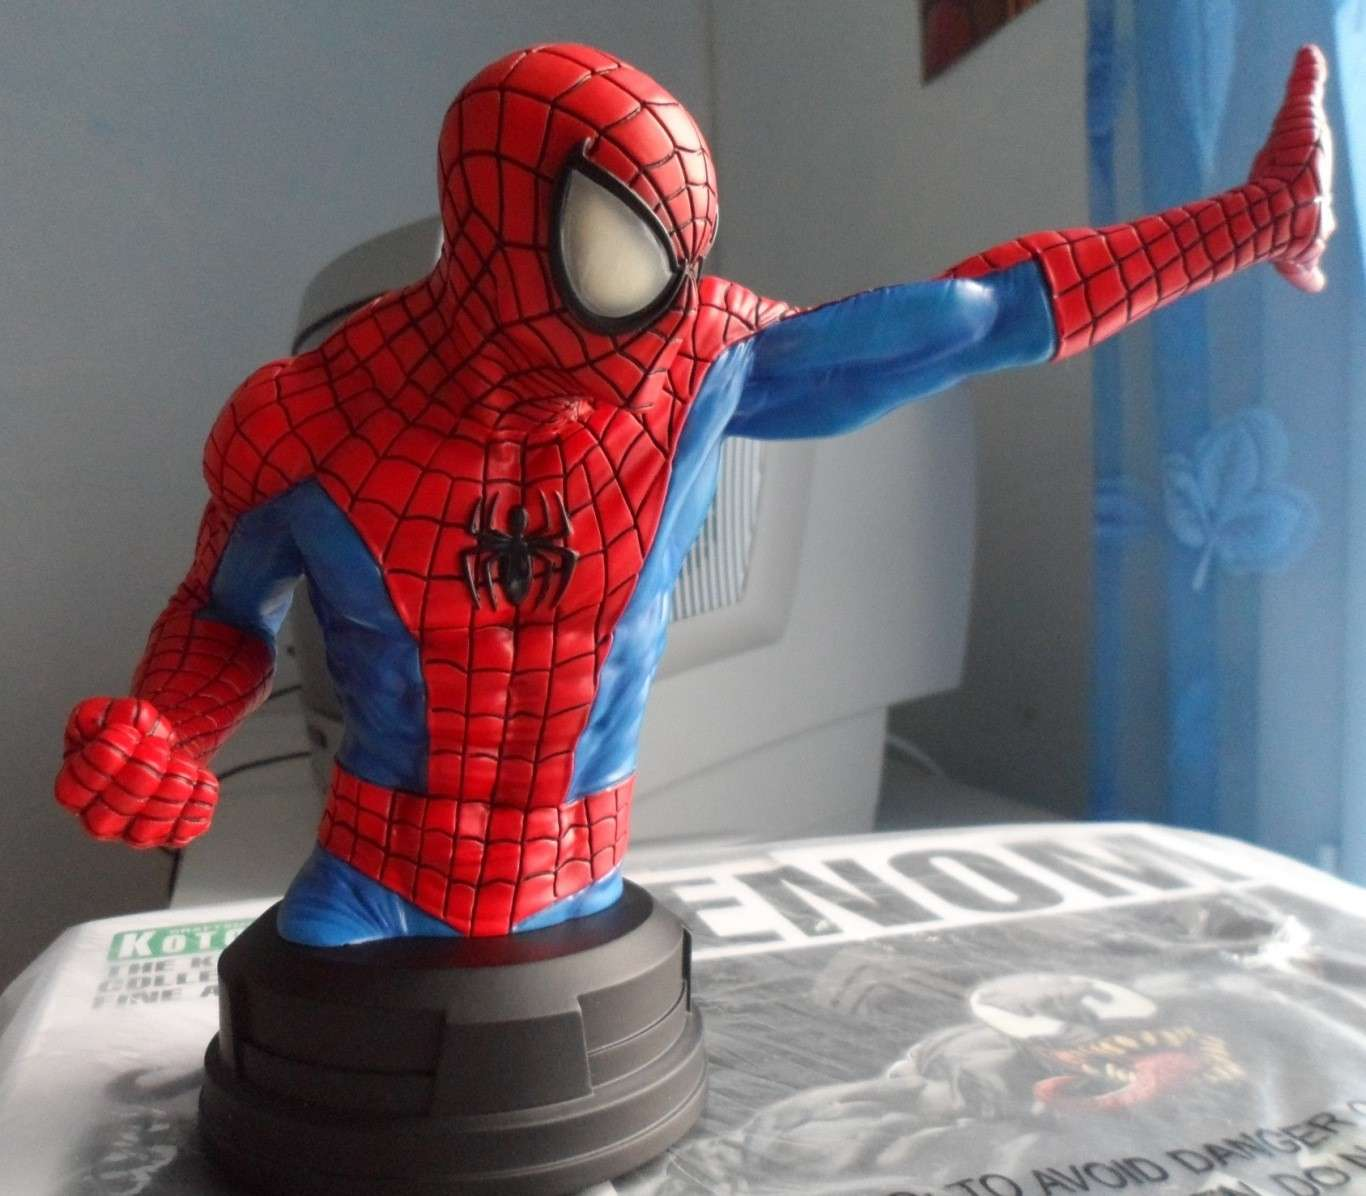 SPIDERMAN RED AND BLUE MINI BUST GENTLE GIANT Spider11